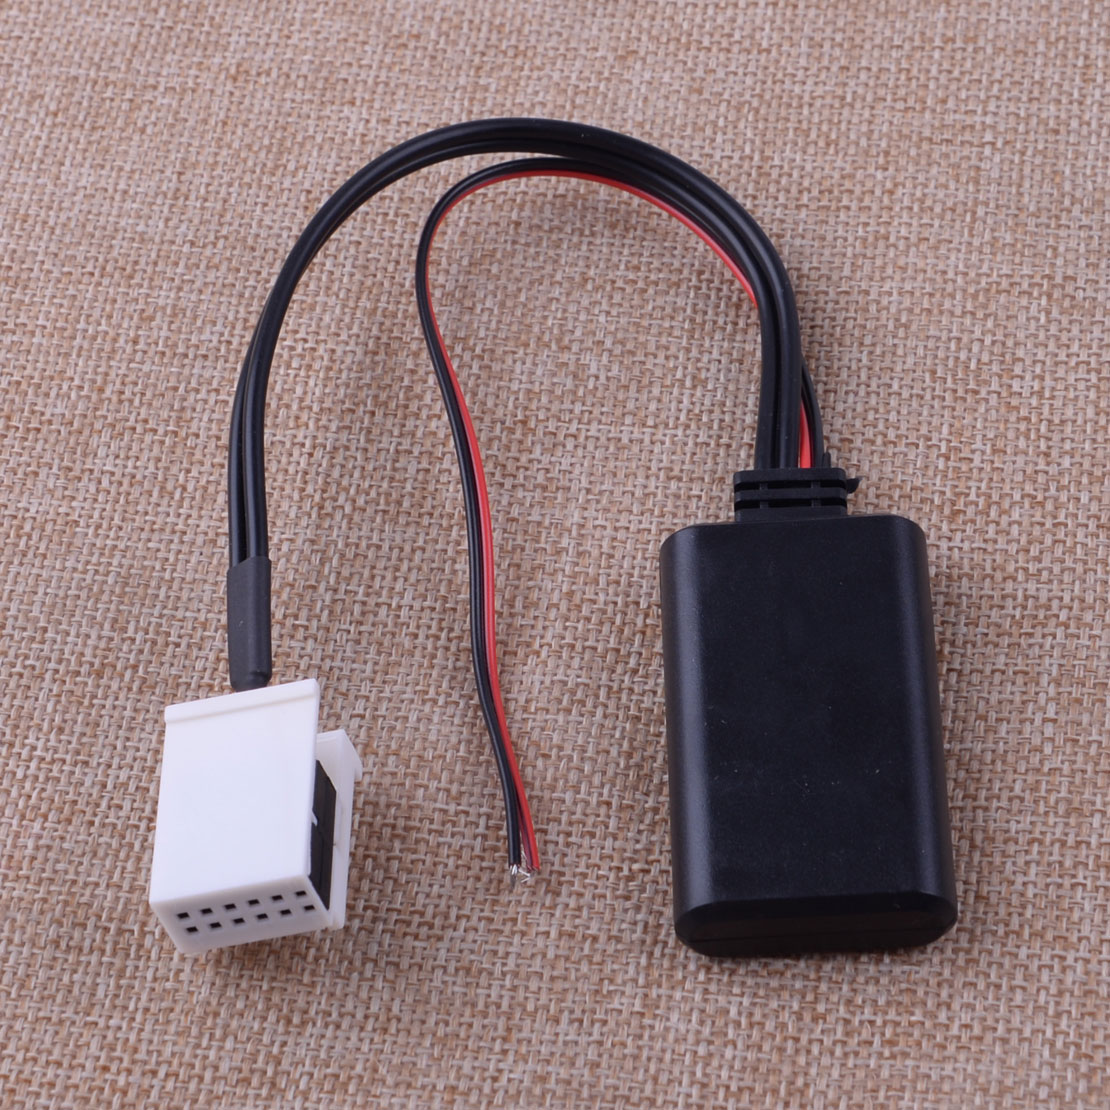 Worldwide delivery citroen rd4 radio in Adapter Of NaBaRa